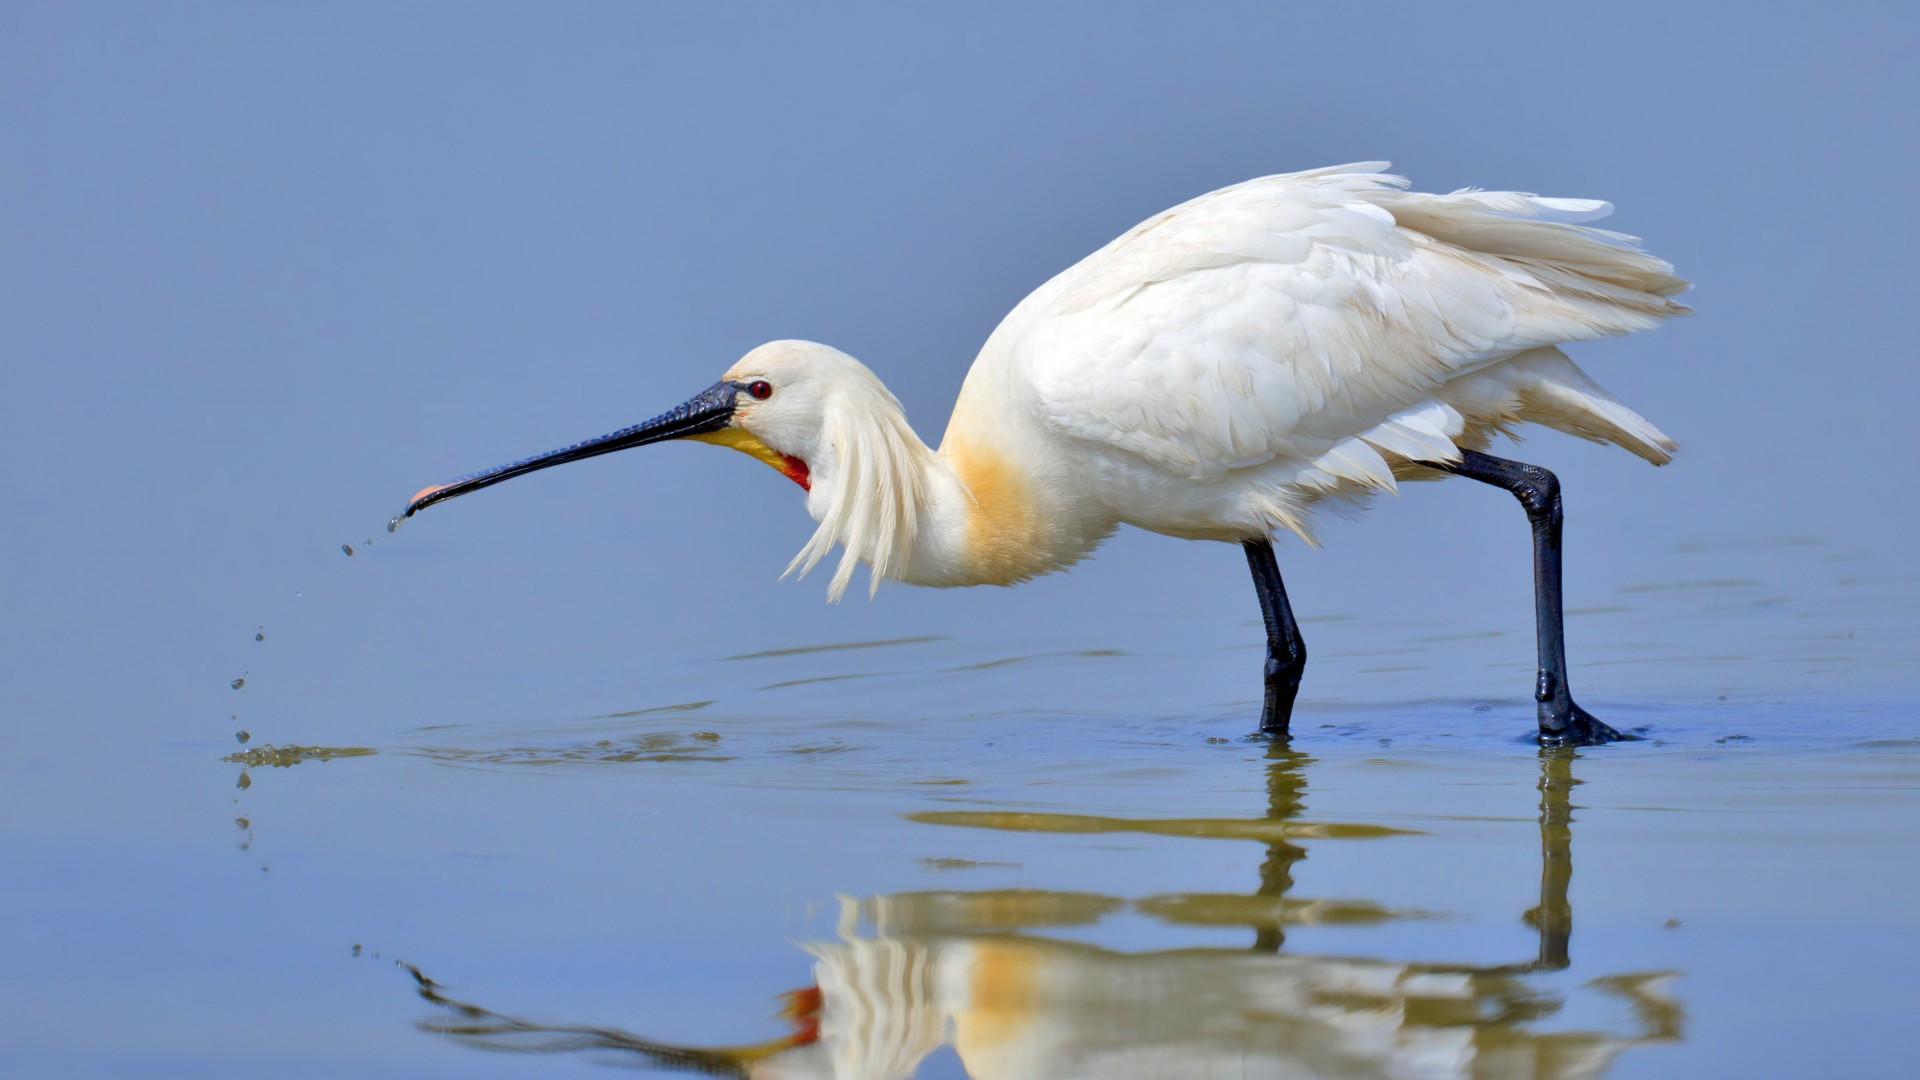 Eurasian spoonbill, 5k, 4k wallpaper, Japan, North Africa, bird, white, animal, nature, water, lake, reflection (horizontal)